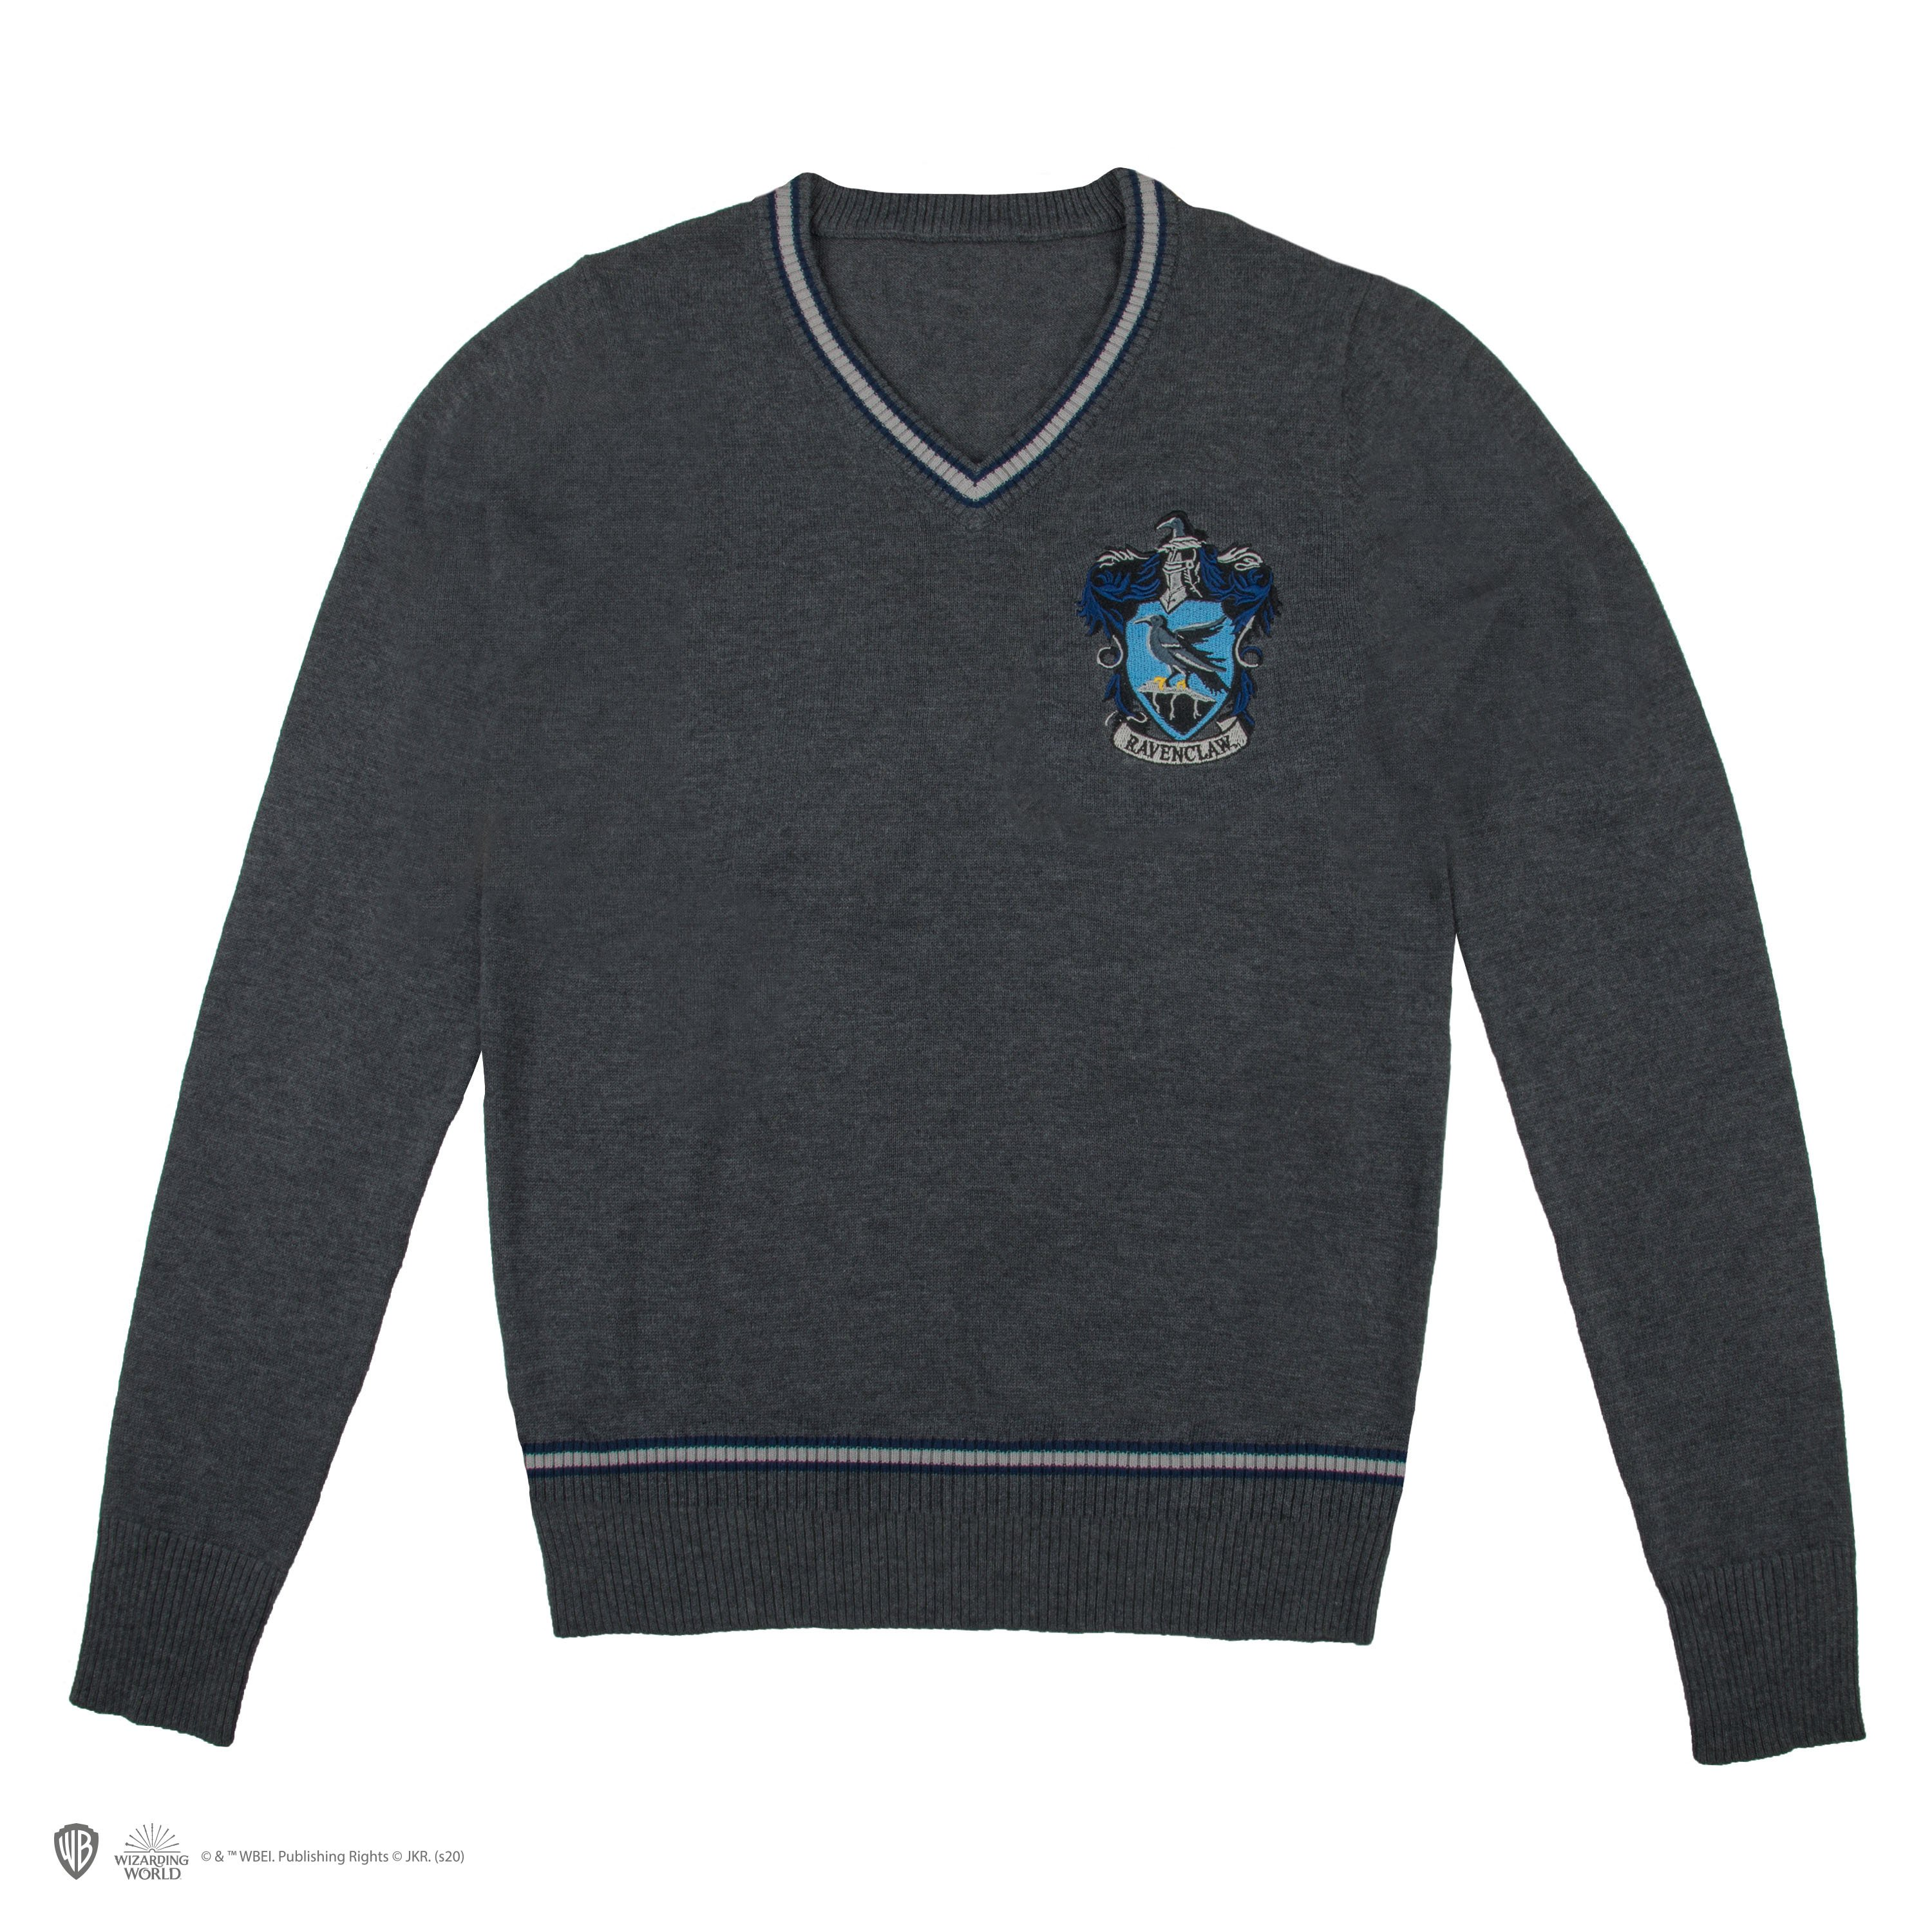 Harry Potter - Ravenclaw - Grey Knitted Sweater - Medium